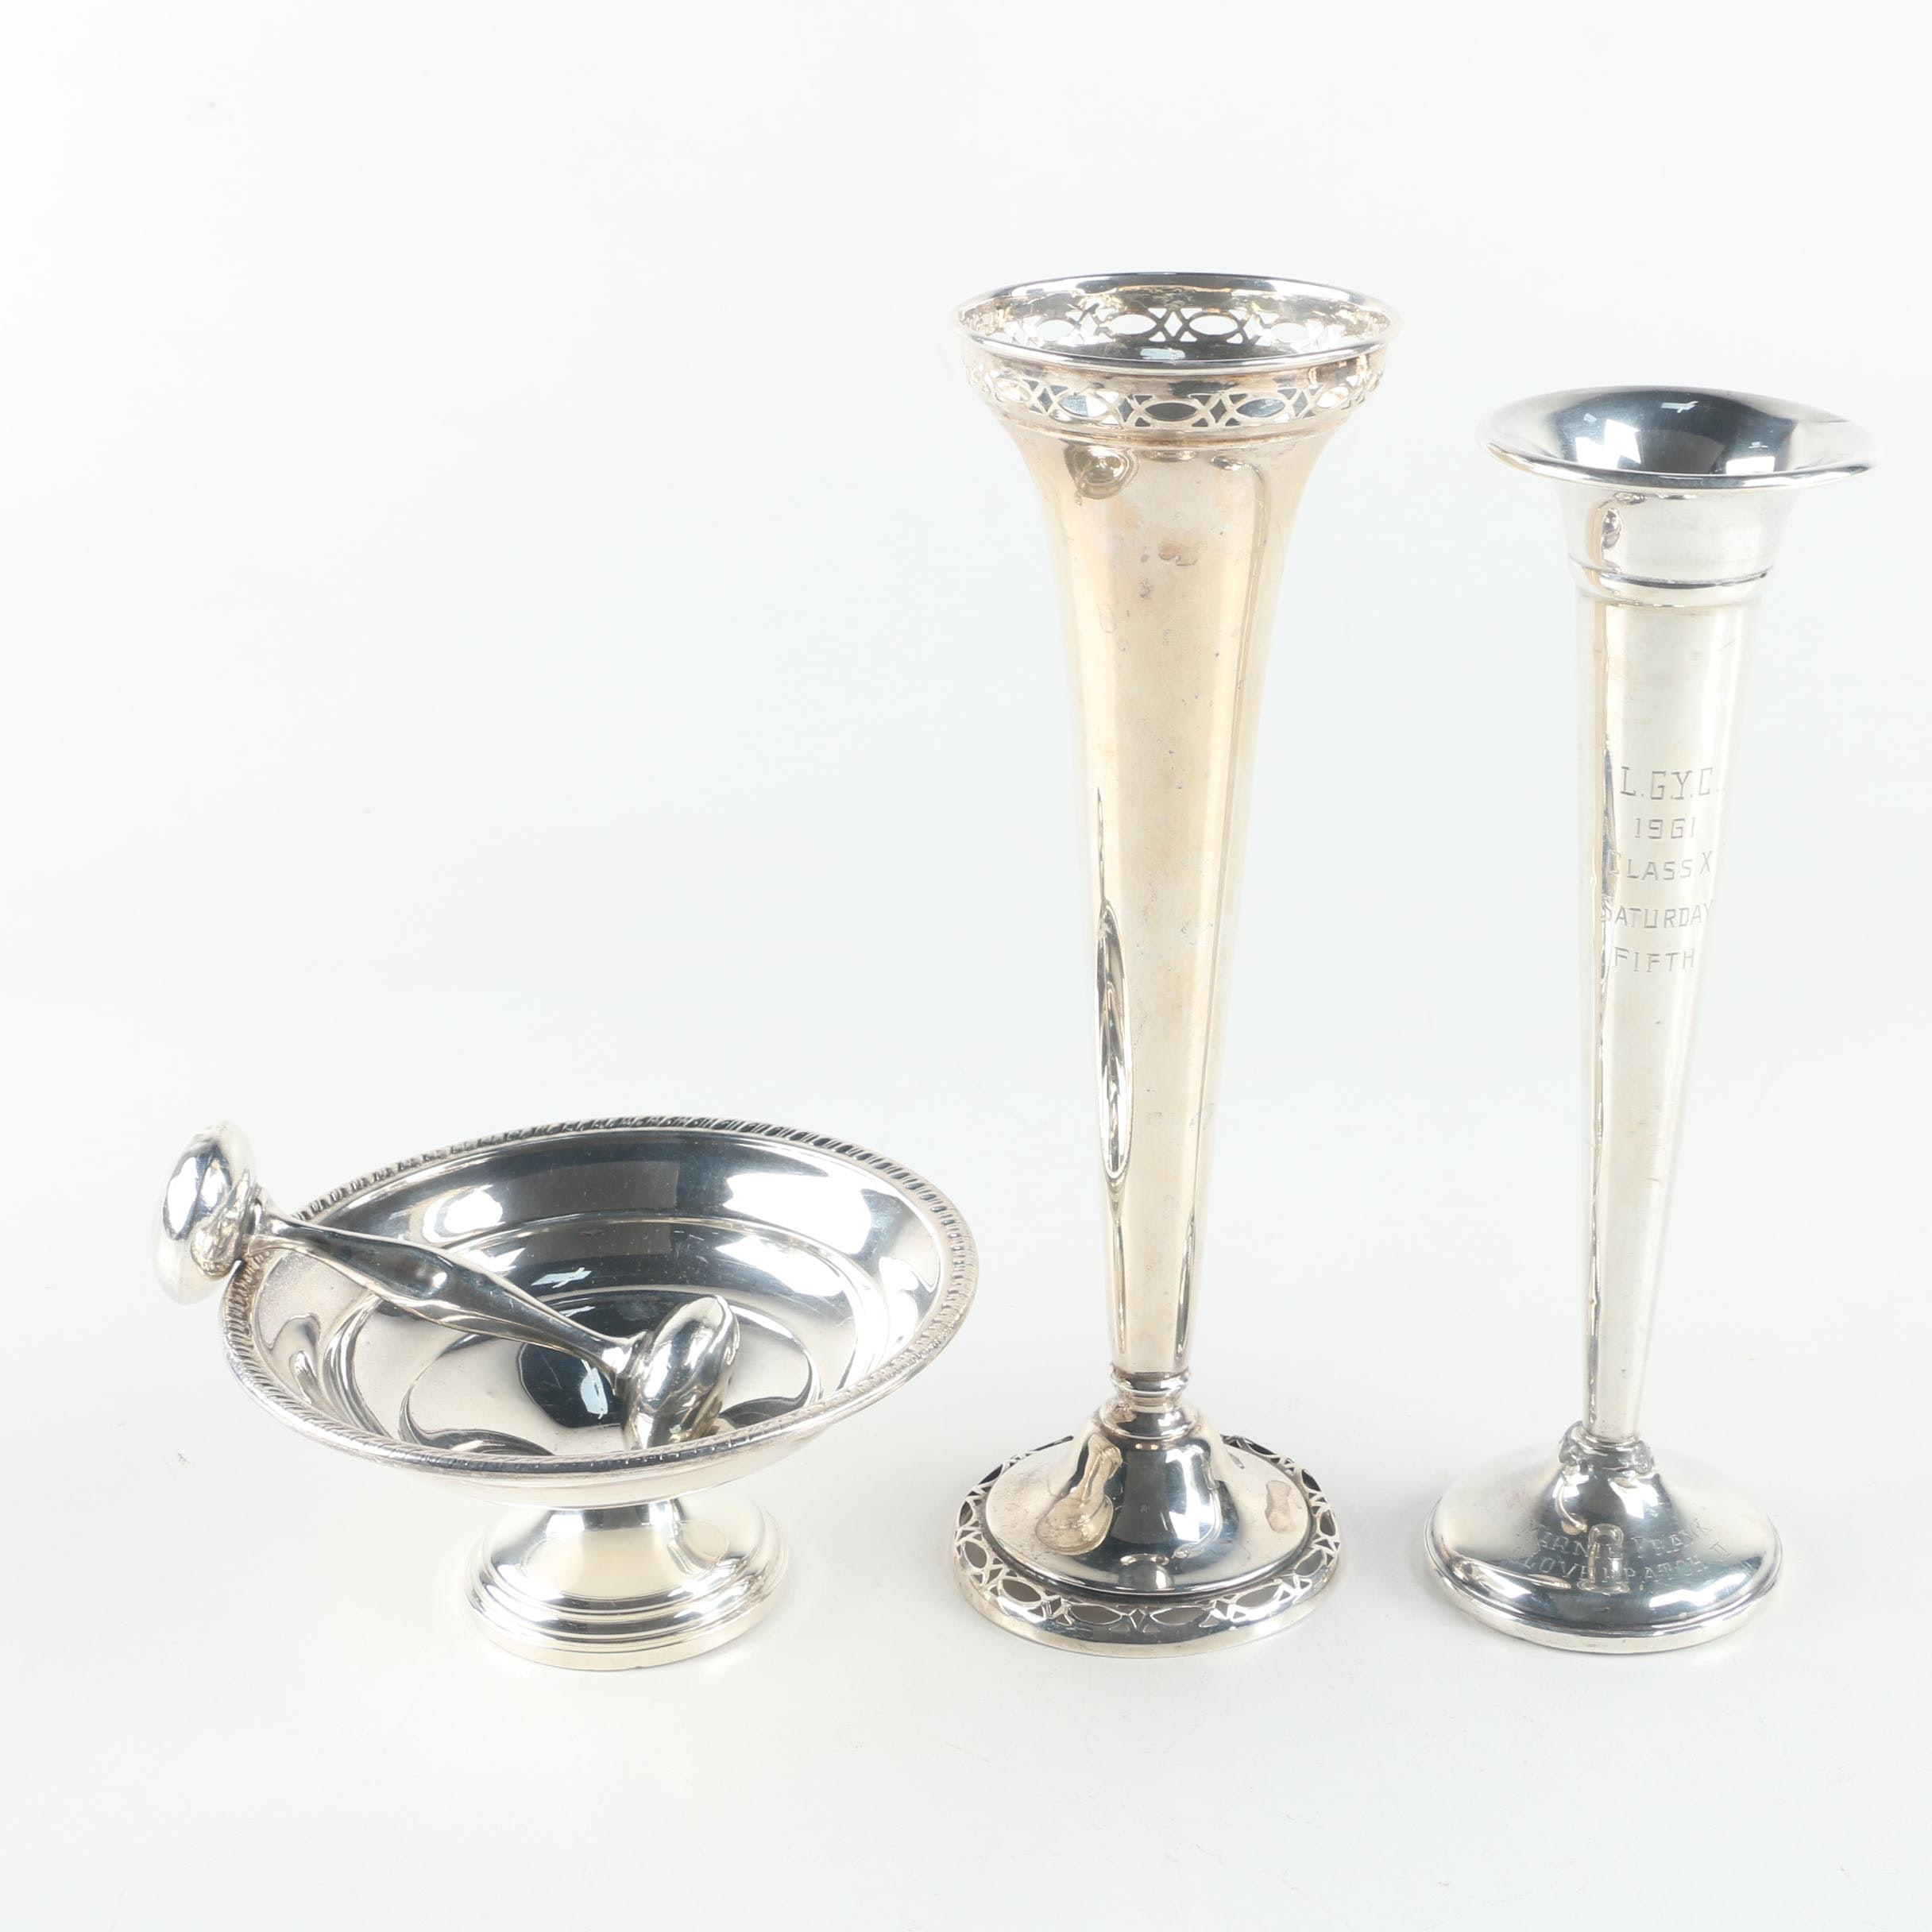 Reed & Barton and Preisner Weighted Sterling Vases with Other Sterling Decor